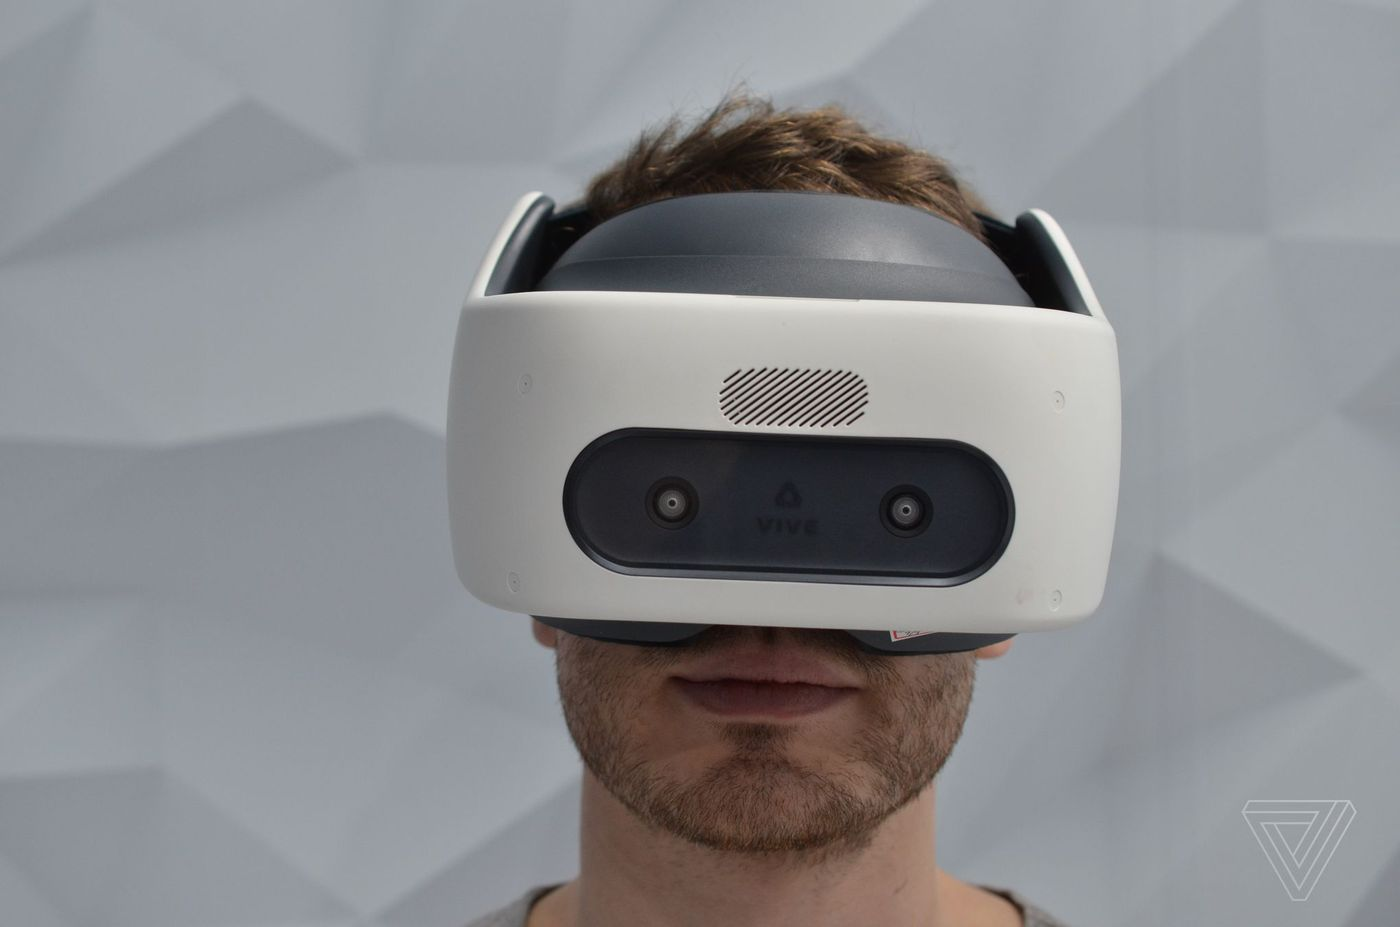 HTC's latest VR headest doesn't need external trackers, but